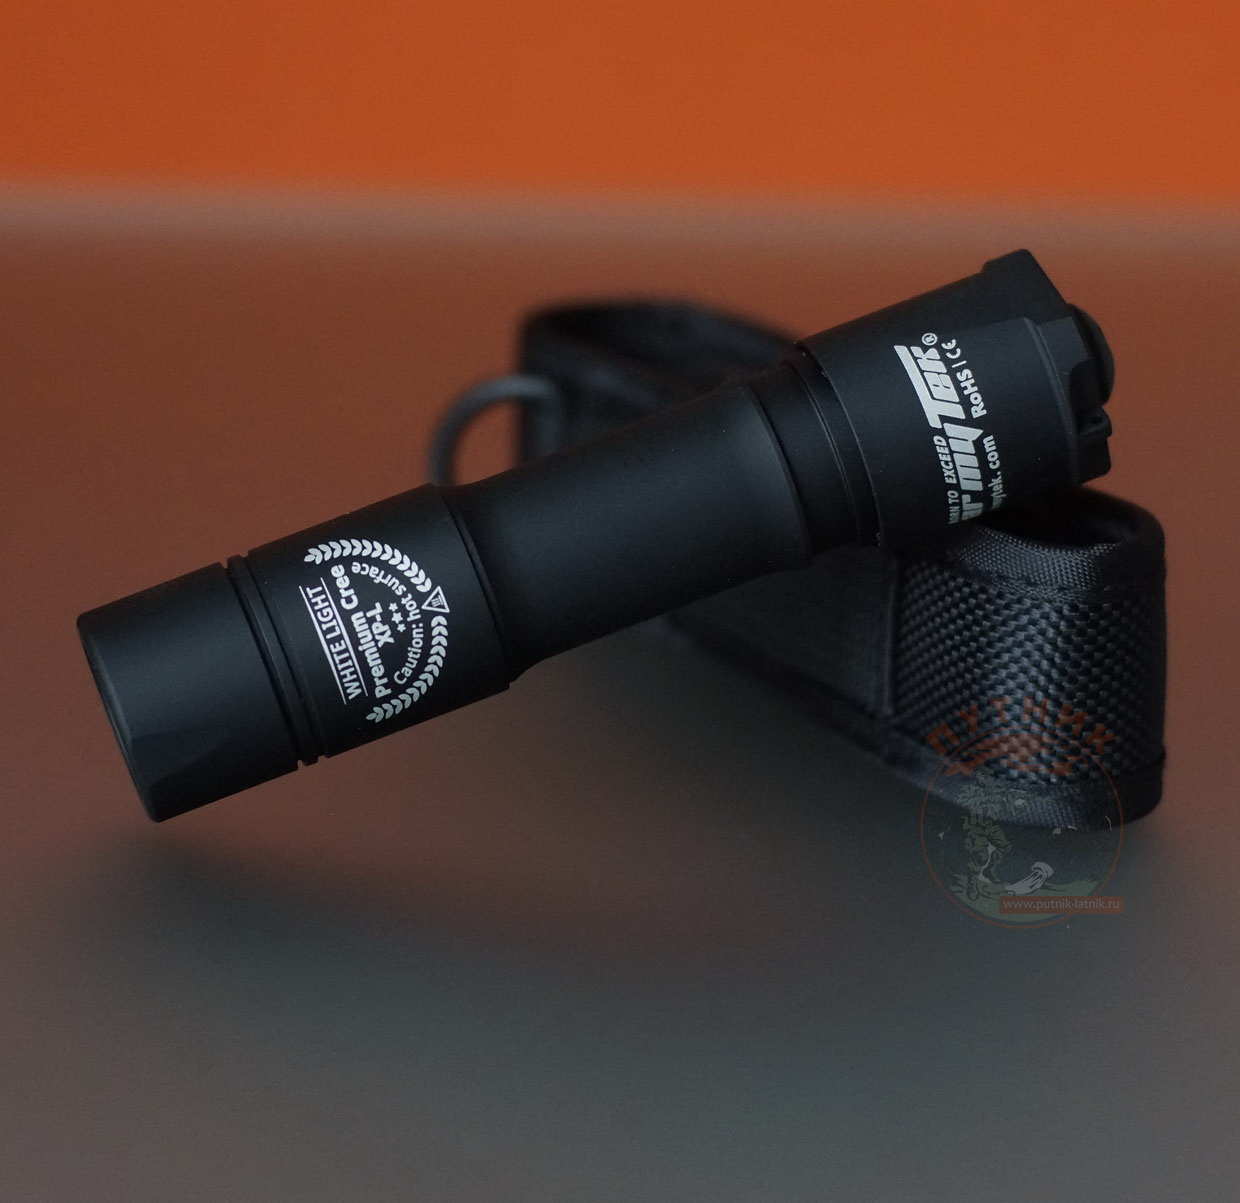 Armytek Partner C2 v3 XP-L